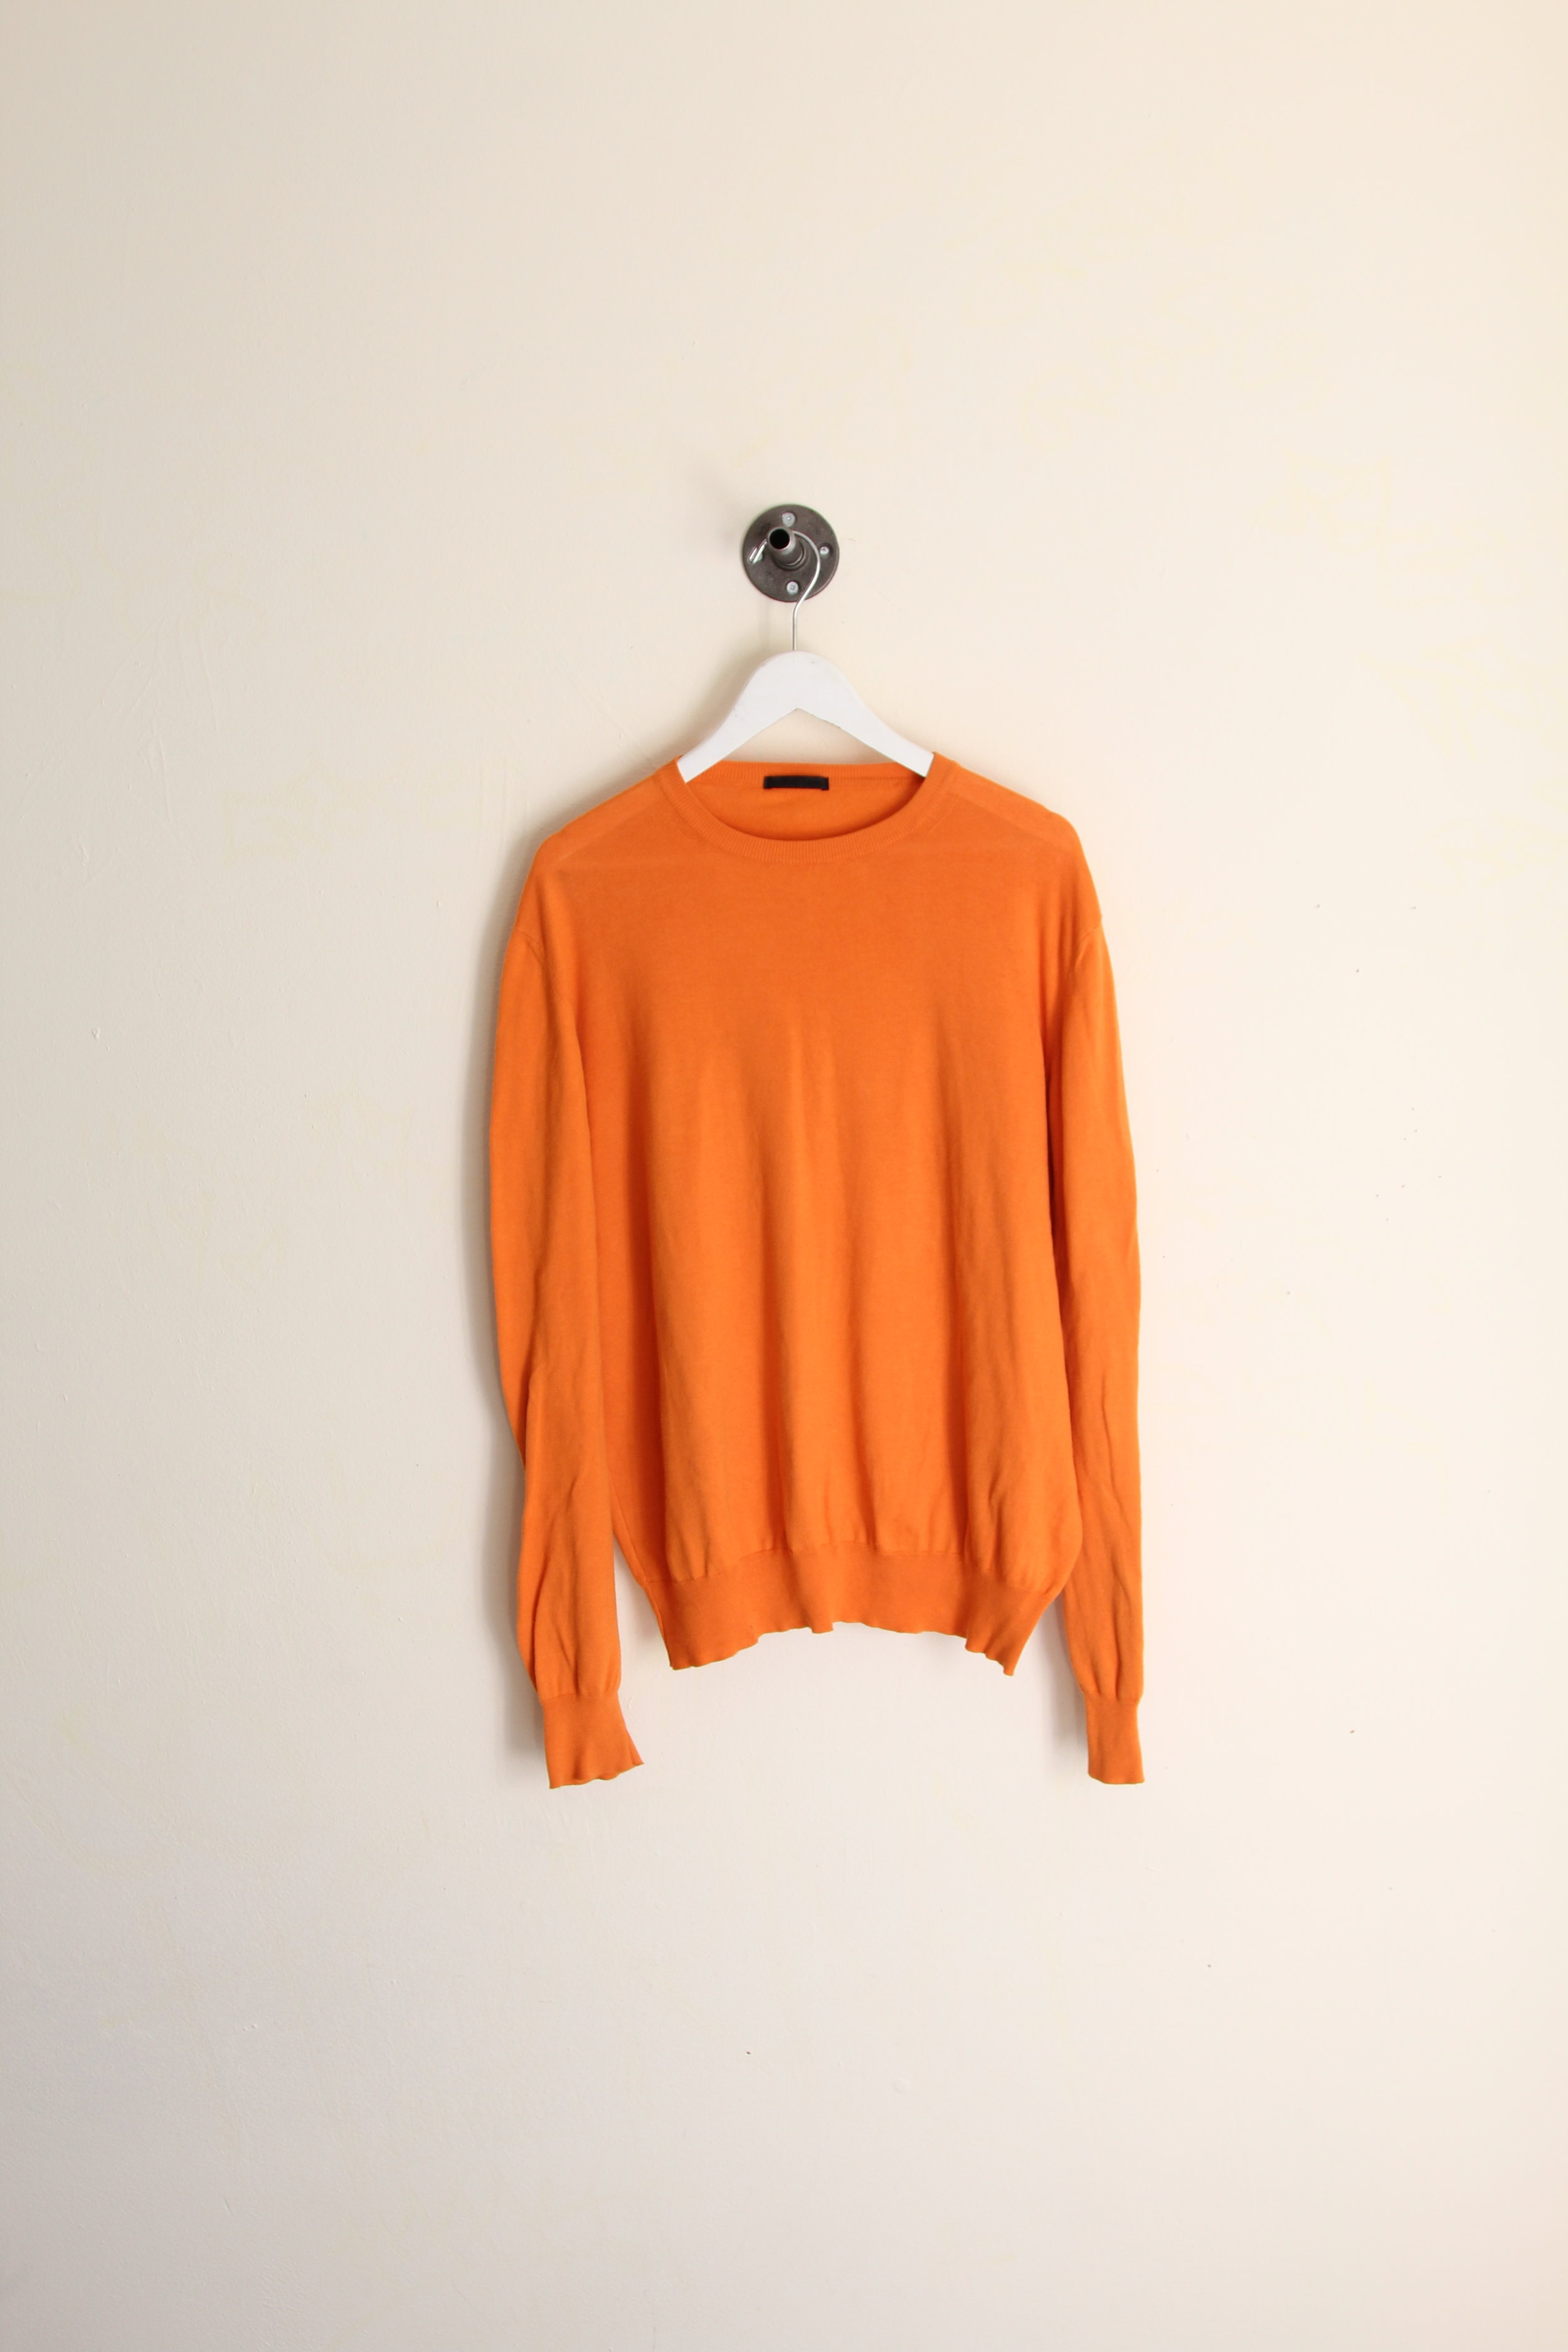 Helmut Lang AW 1999 Cotton Sweater